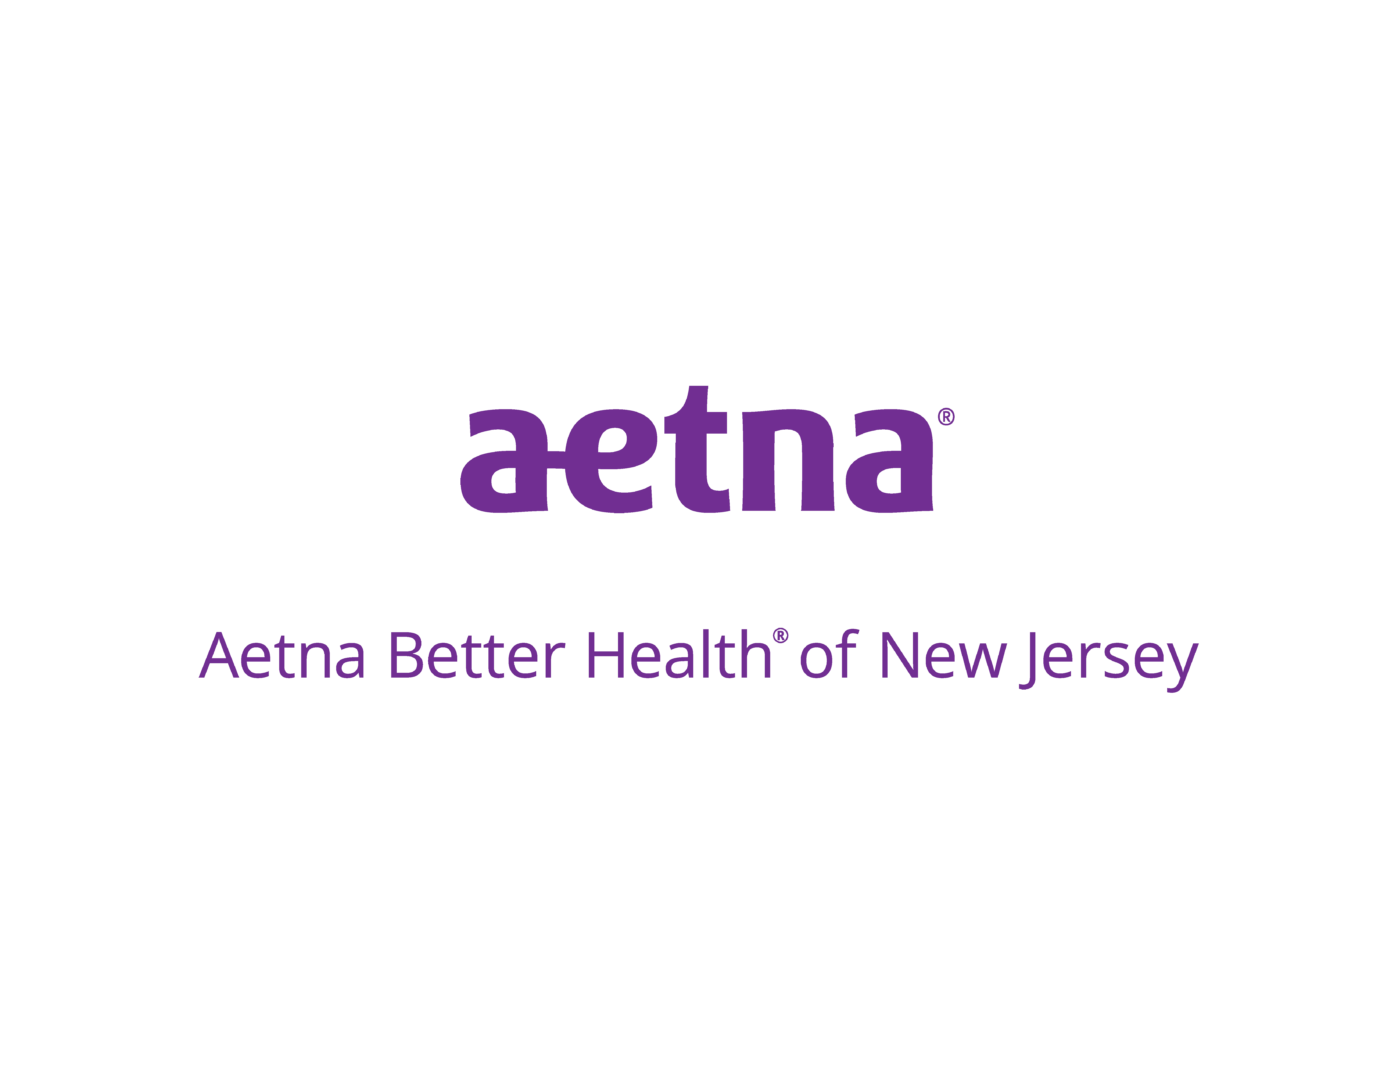 https://ohinj.org/wp-content/uploads/2020/04/Aetna-Logo-1.png